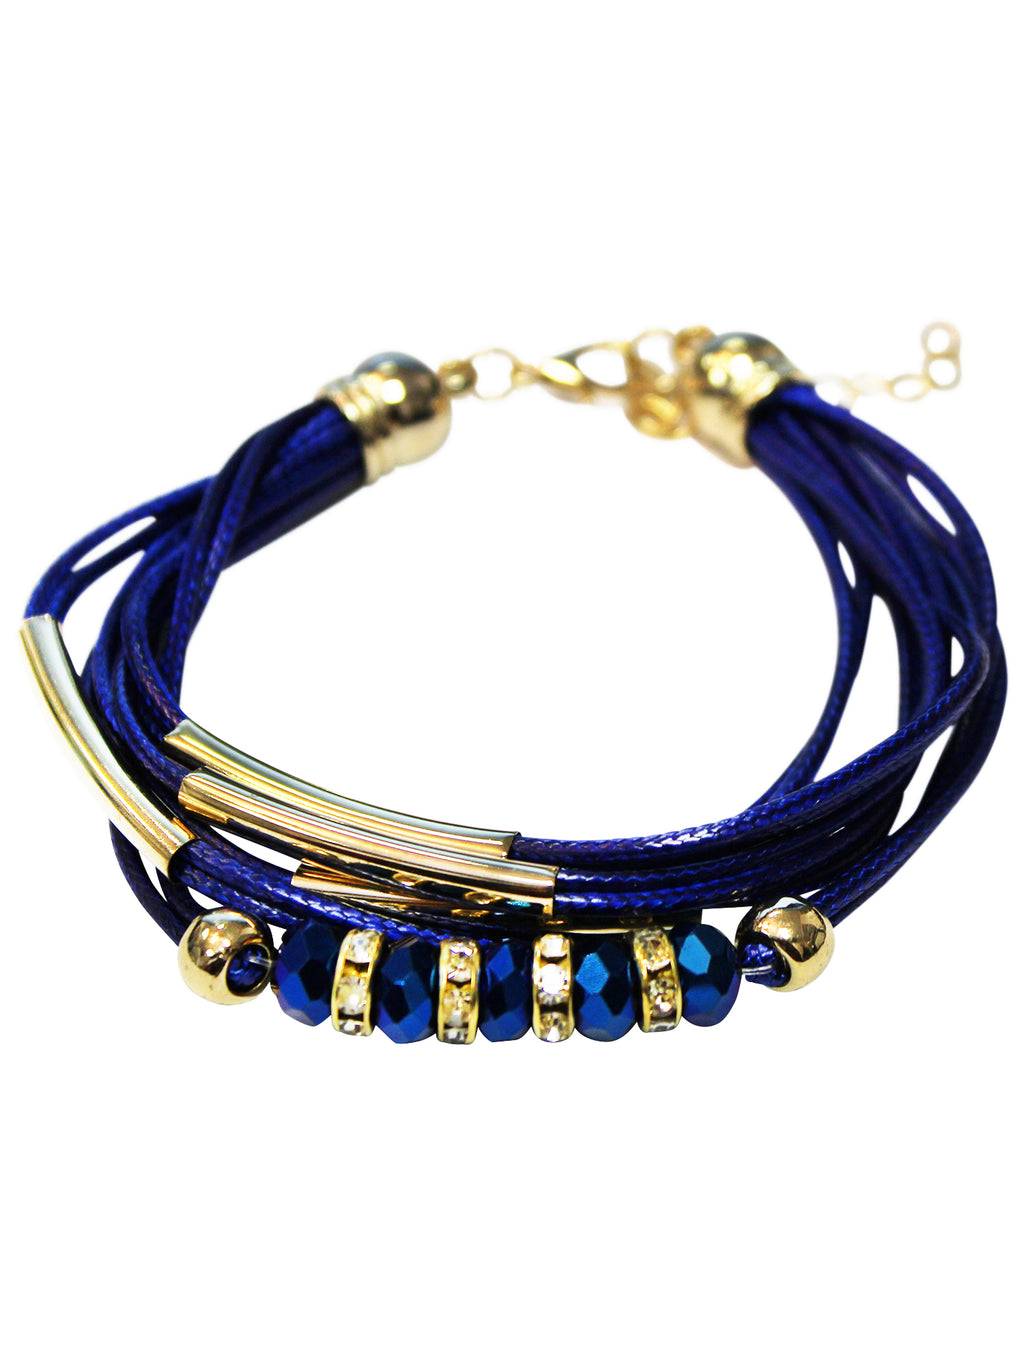 Blue Cord Bracelet With Jeweled Accents